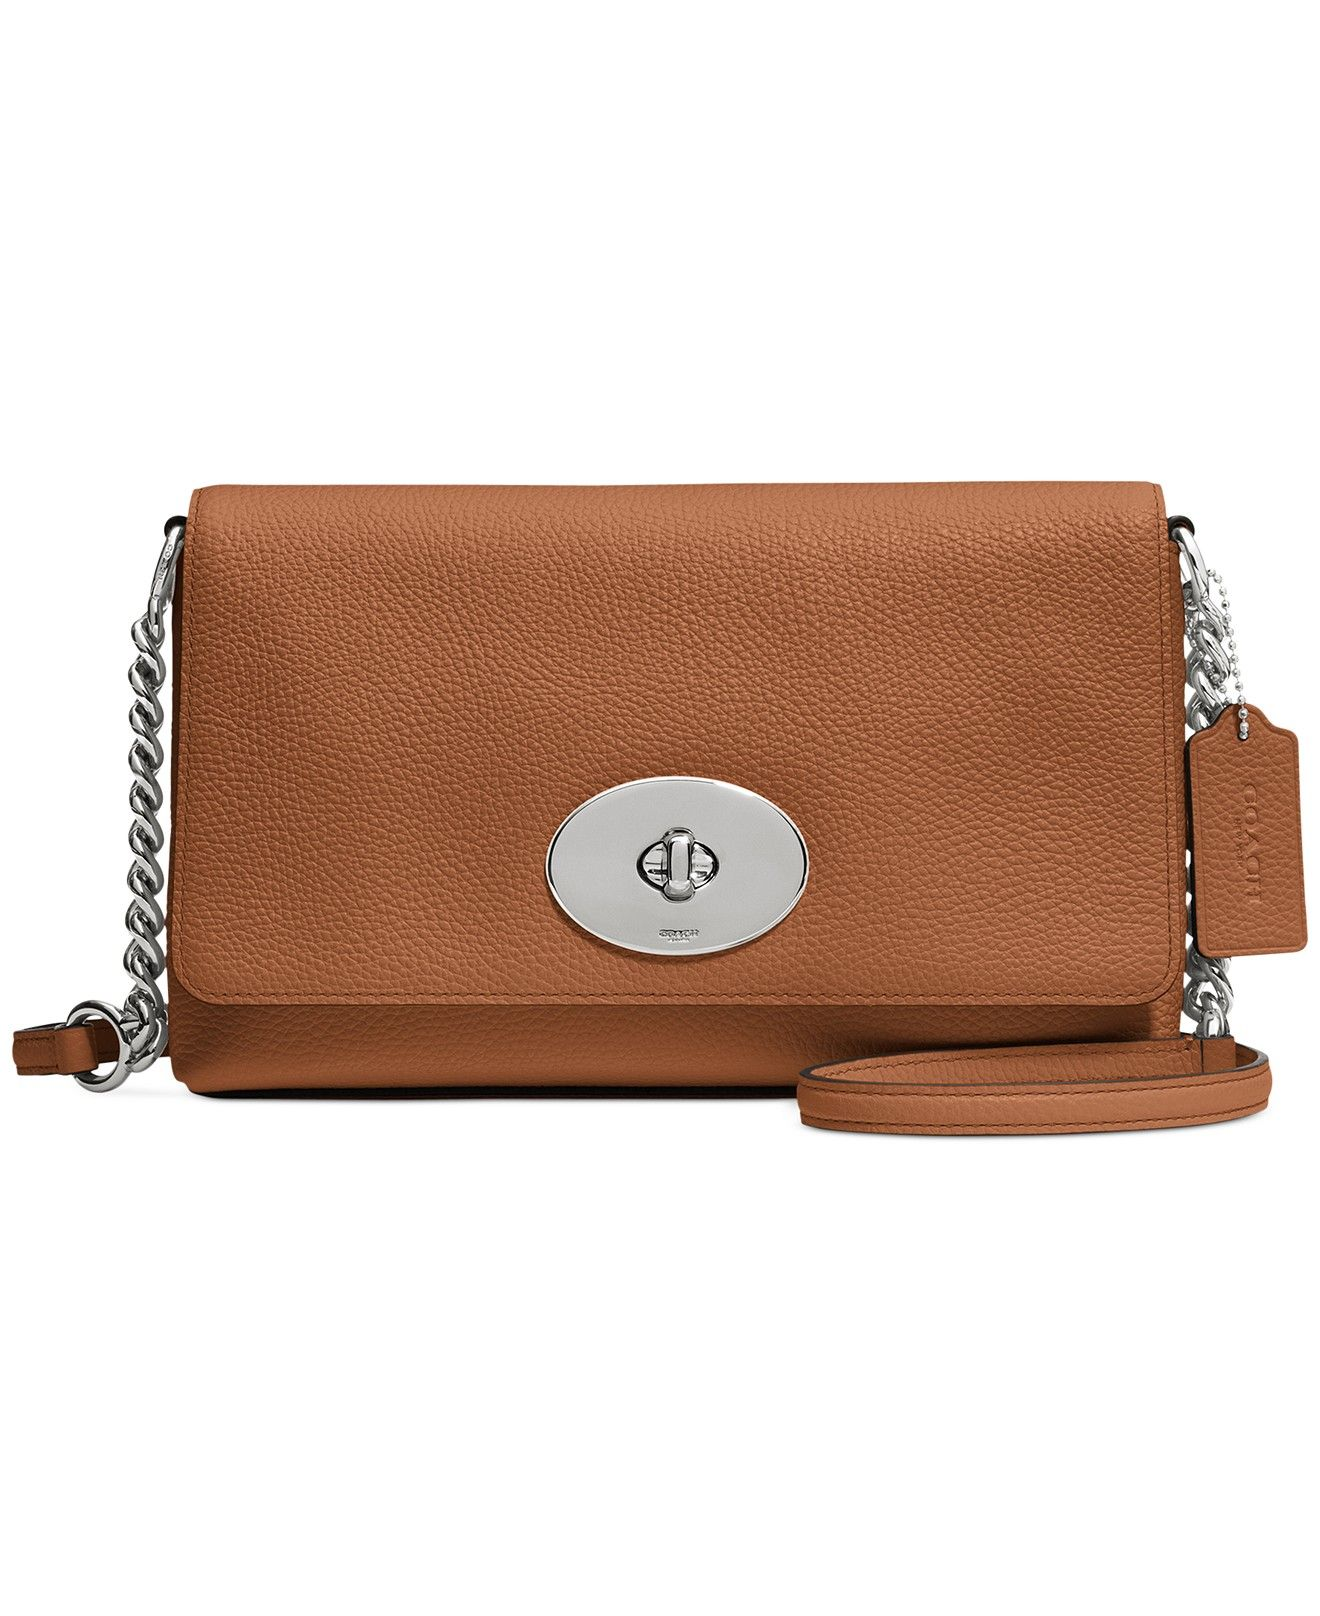 b1ef62a073372 COACH CROSSTOWN CROSSBODY IN POLISHED PEBBLE LEATHER - COACH - Handbags &  Accessories - Macy's